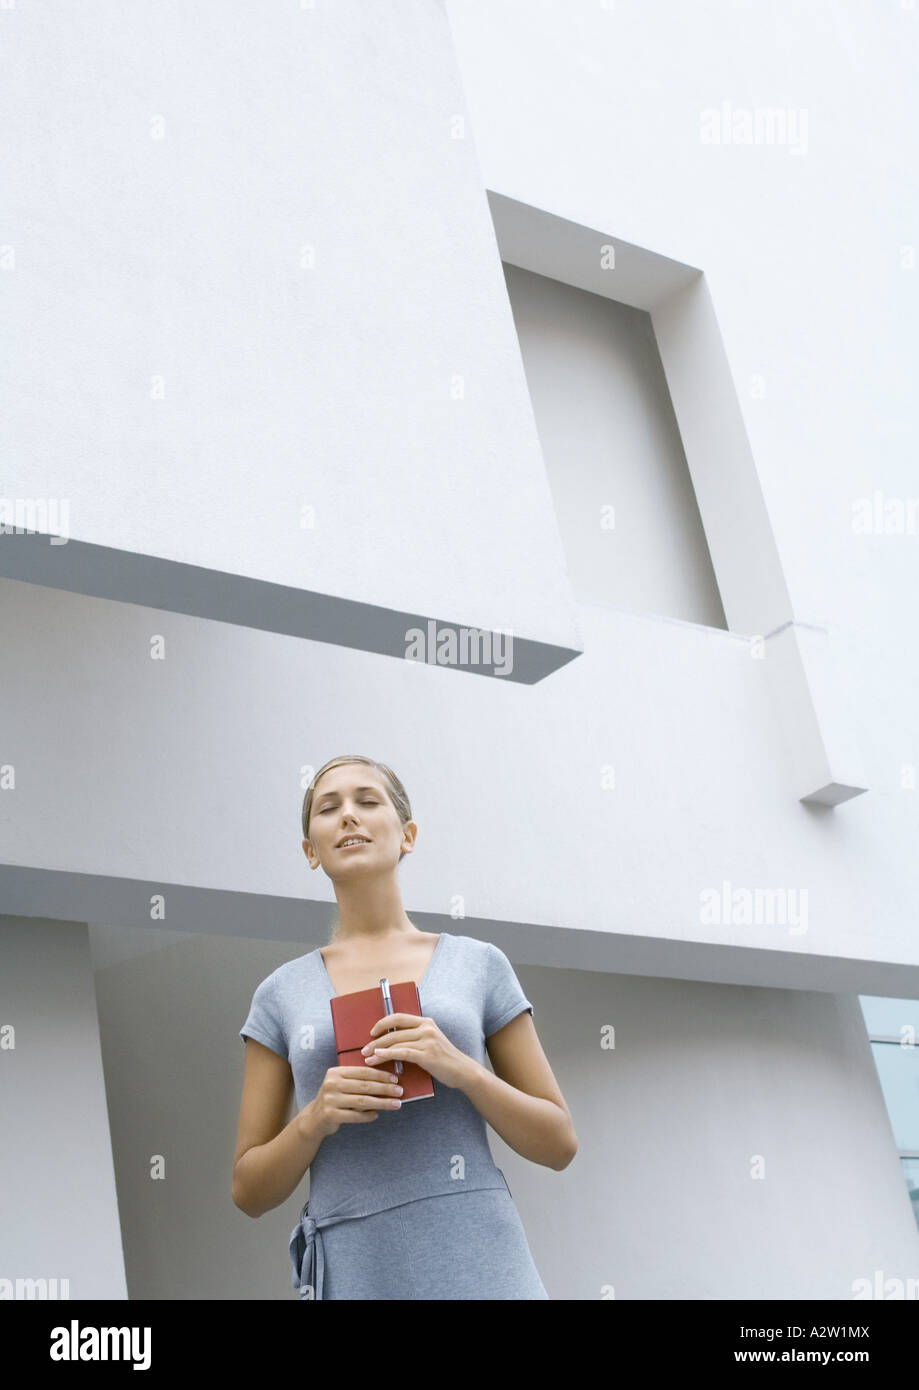 Woman standing in front of building, holding closed book, eyes shut, low angle view - Stock Image